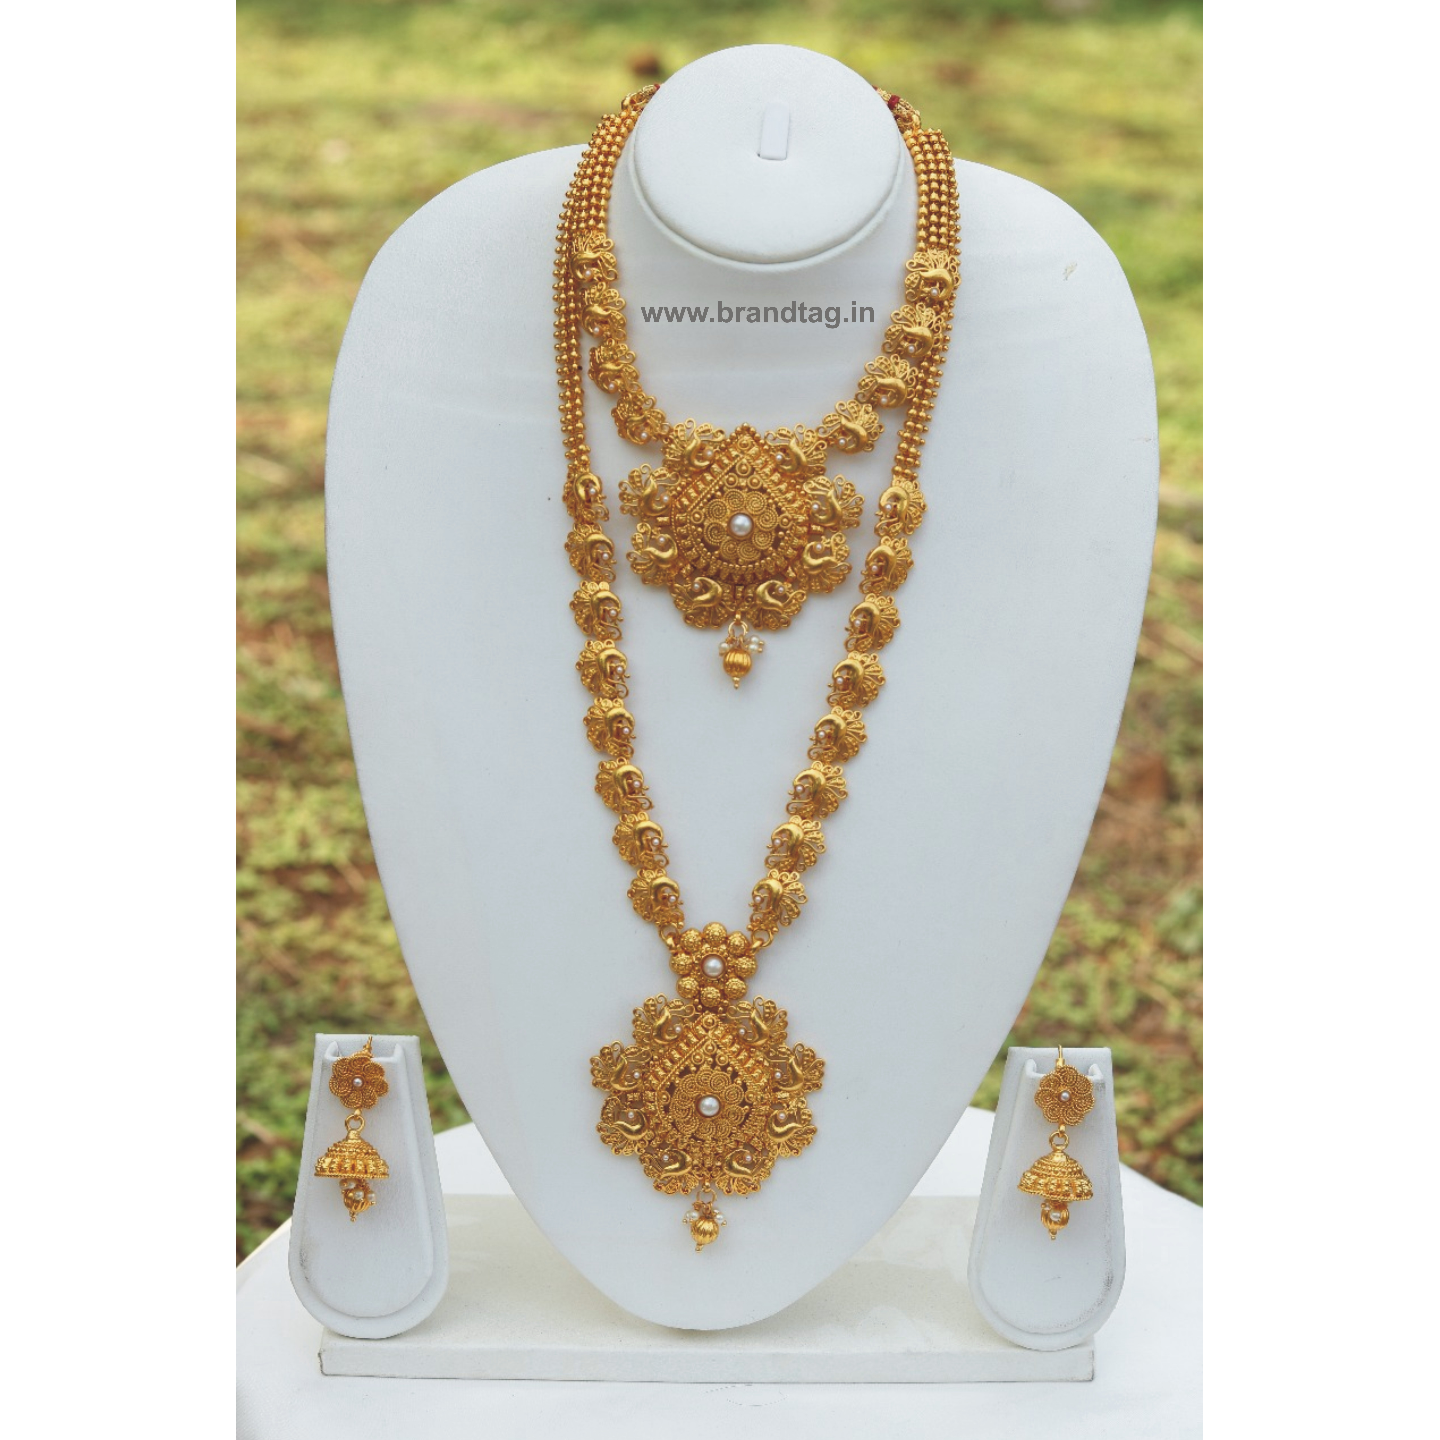 Fine-looking Matte Finished Golden Bridal Necklace set !